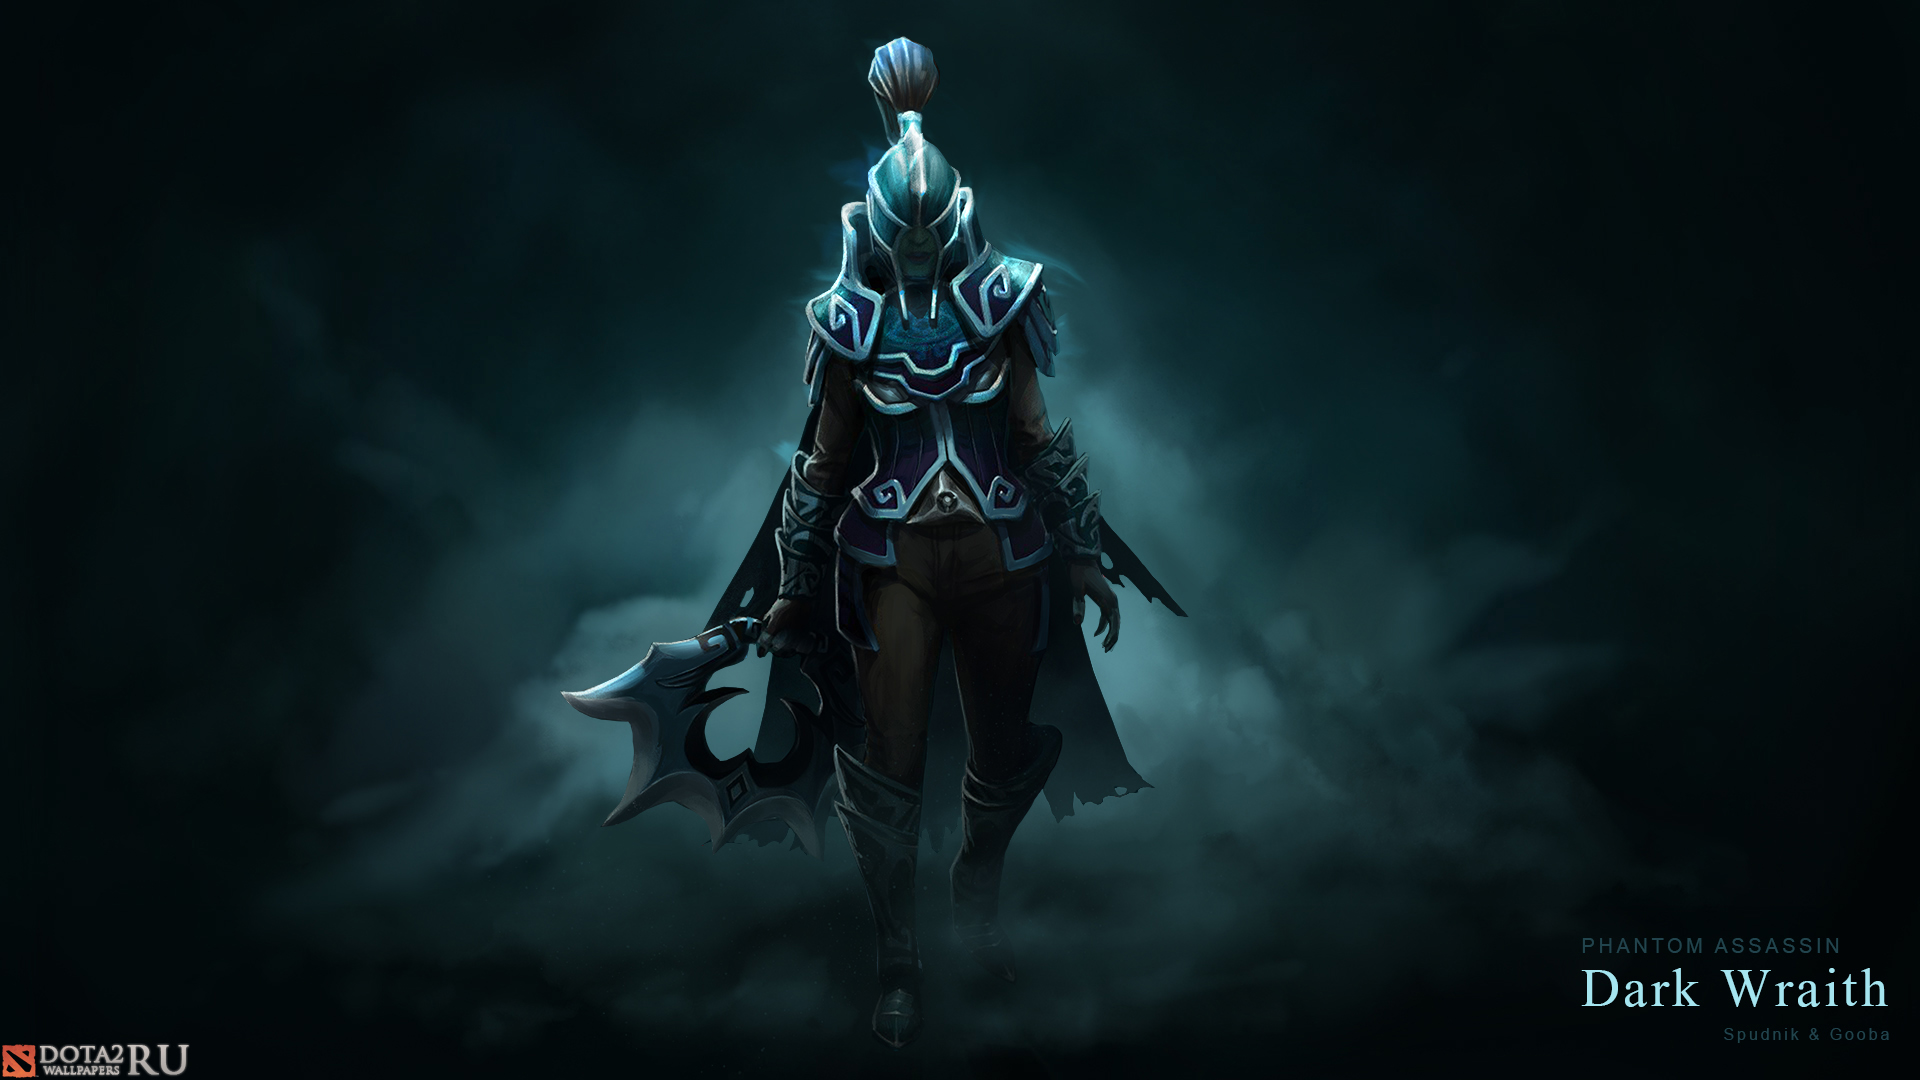 Phantom assassin